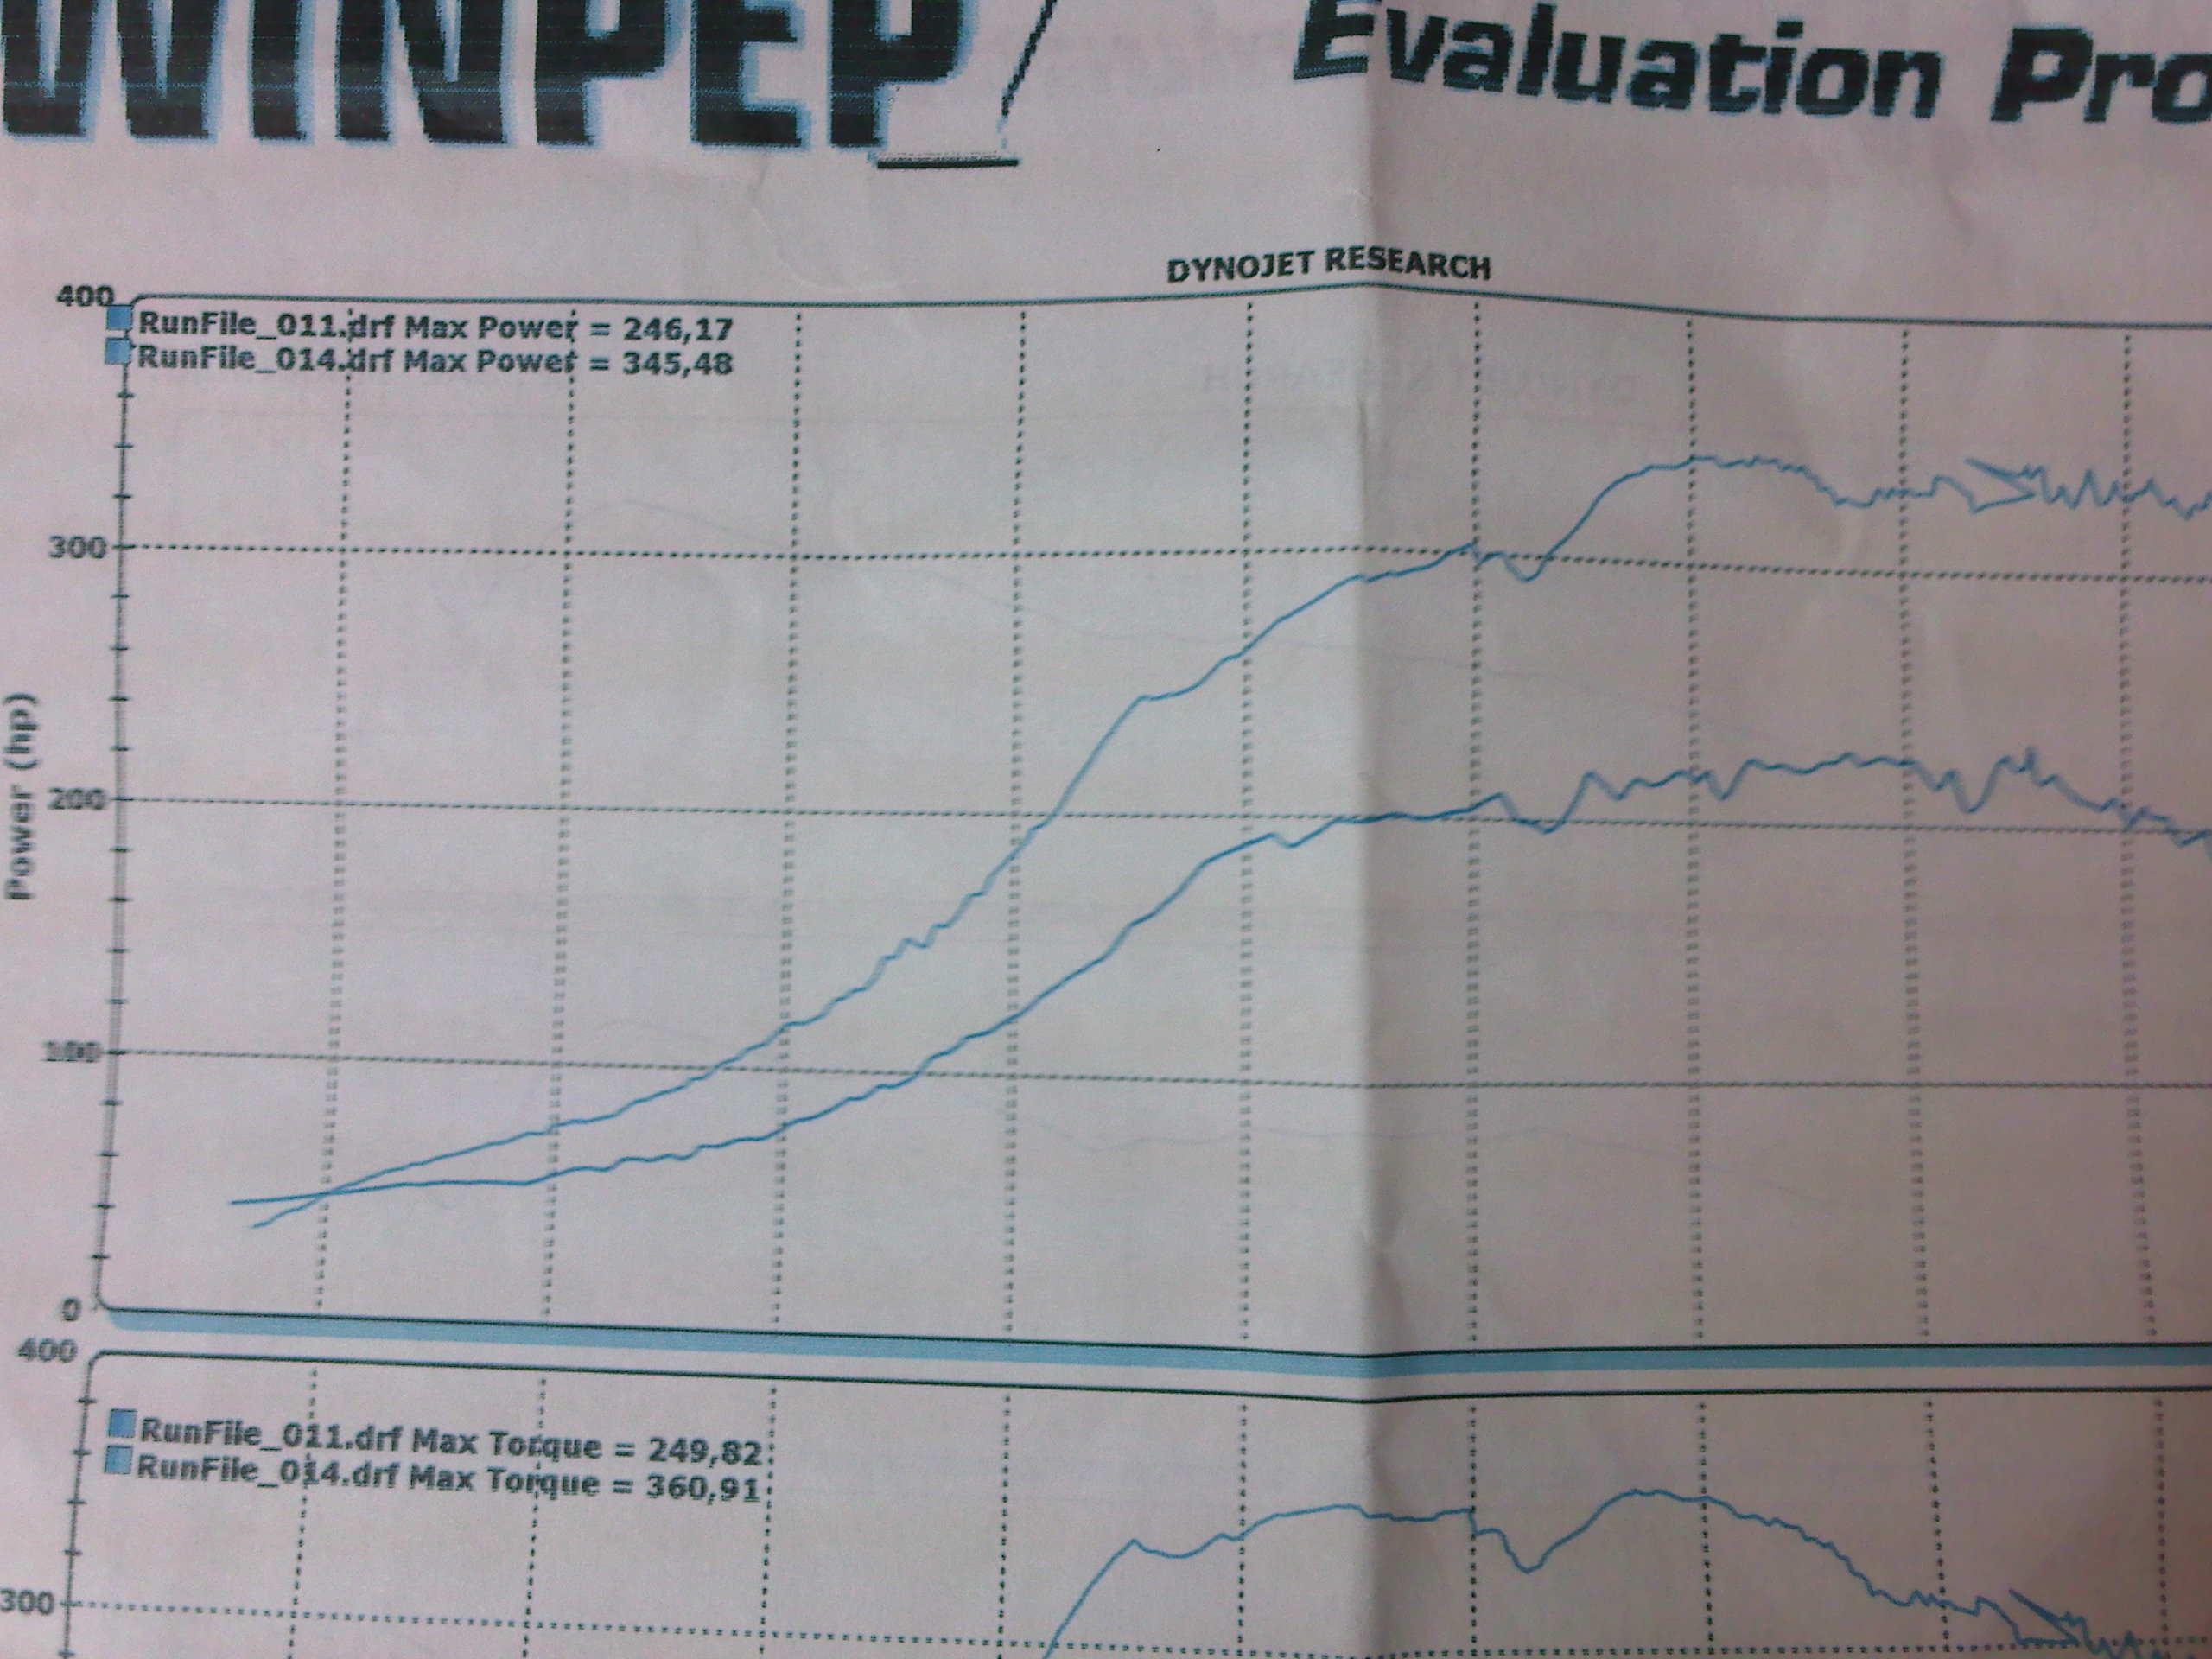 1996 Volkswagen GTI vr6 turbo Dyno Results Graph